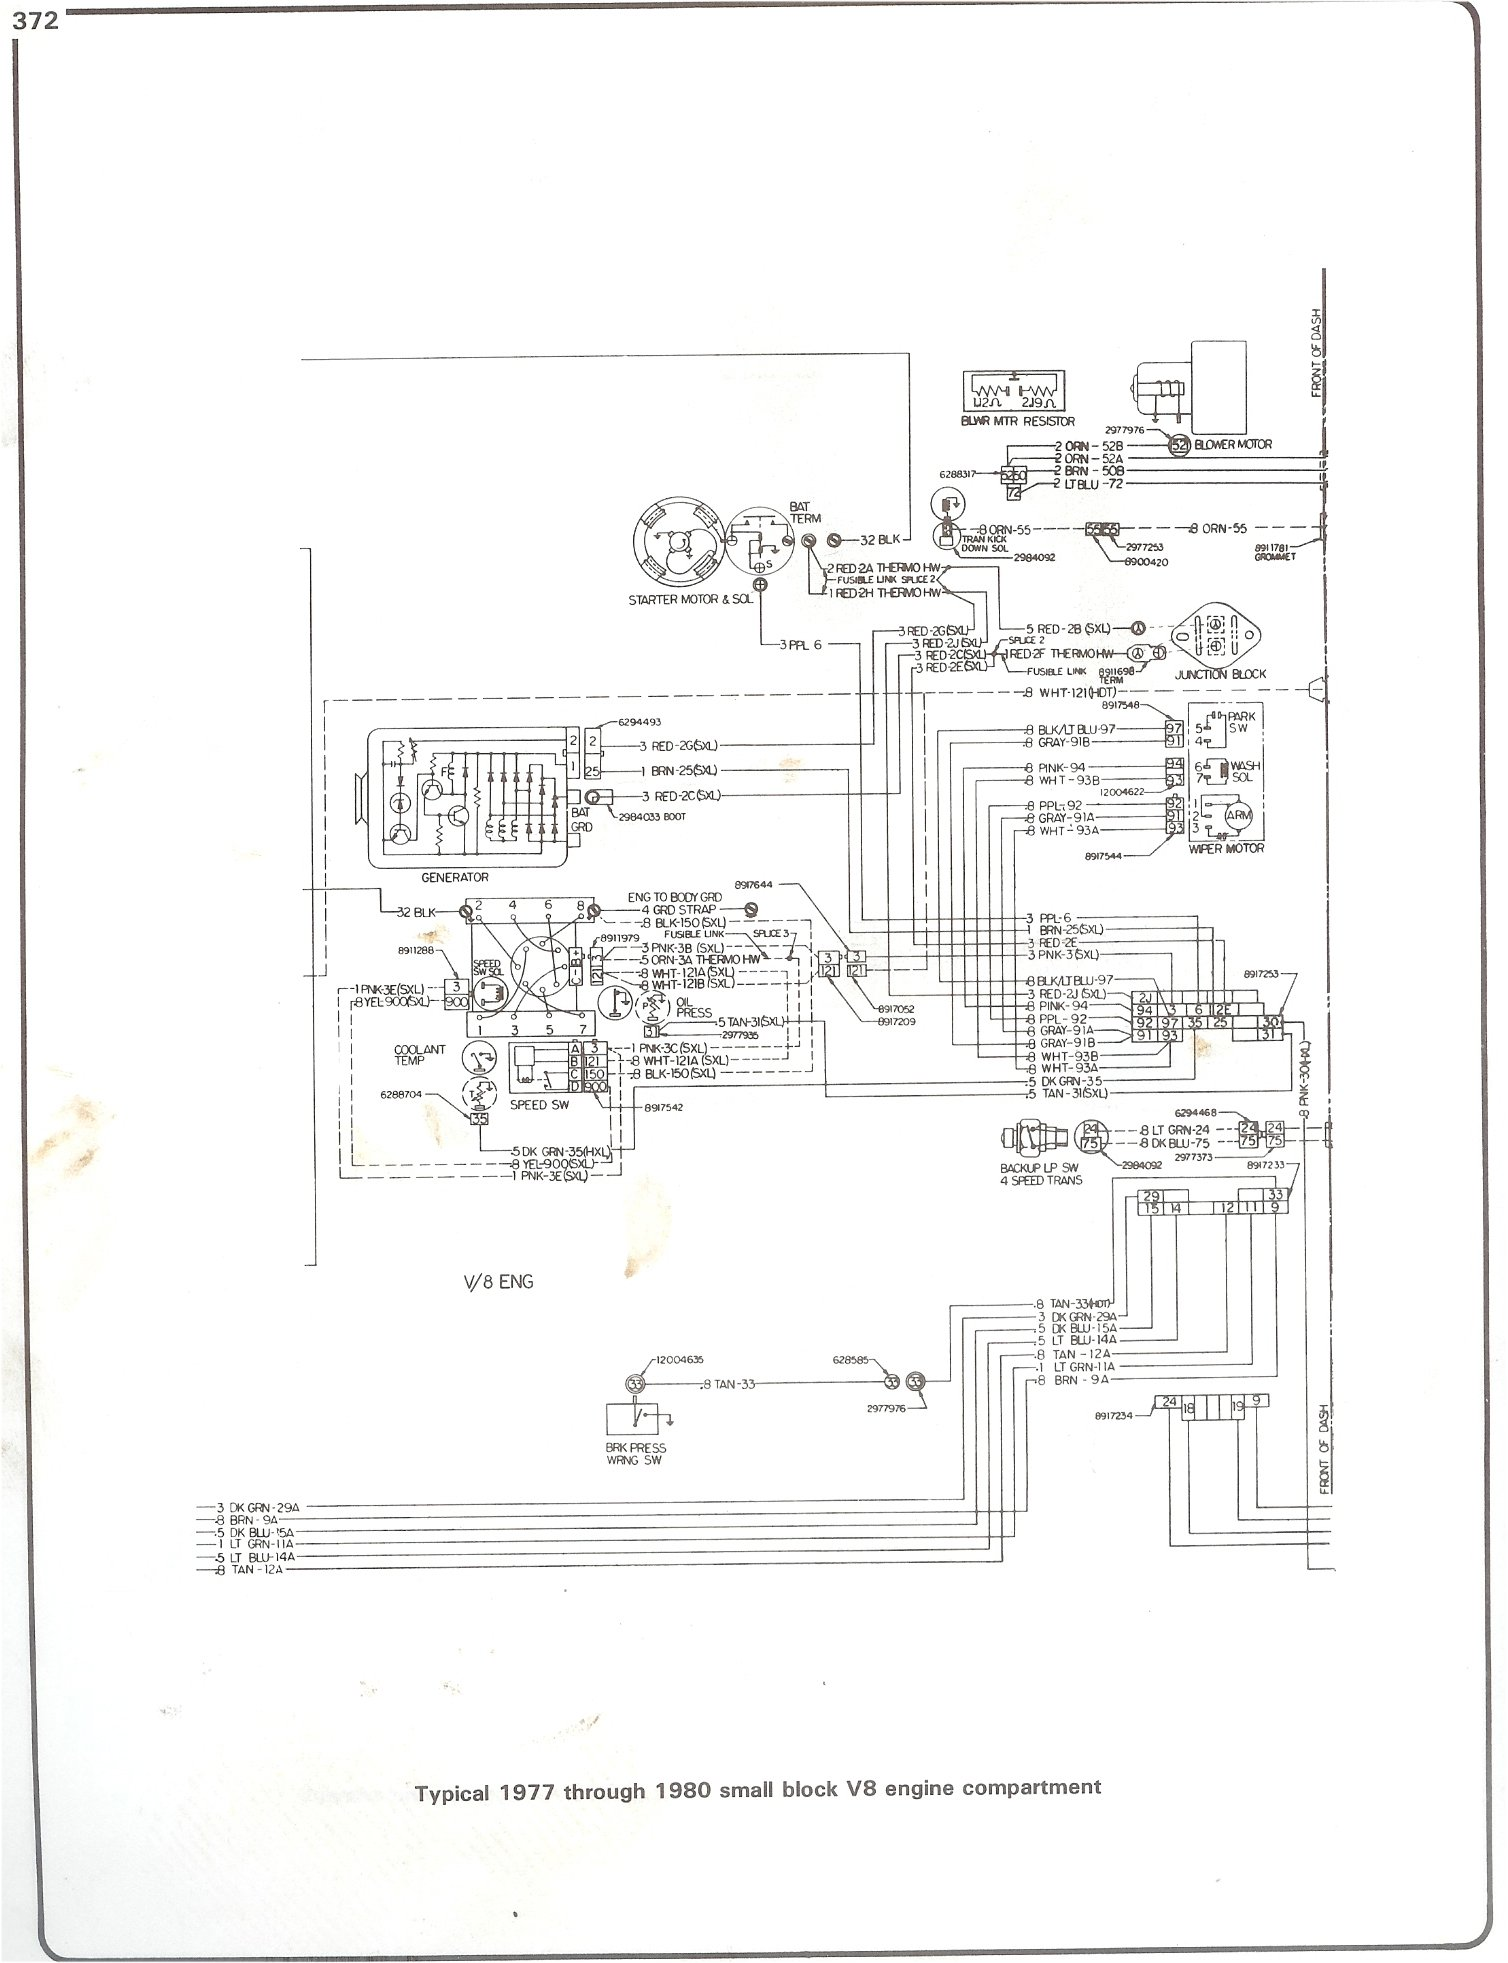 77 Chevy Wiring Diagram Another Blog About 1977 Nova Complete 73 87 Diagrams Rh Forum 87chevytrucks Com